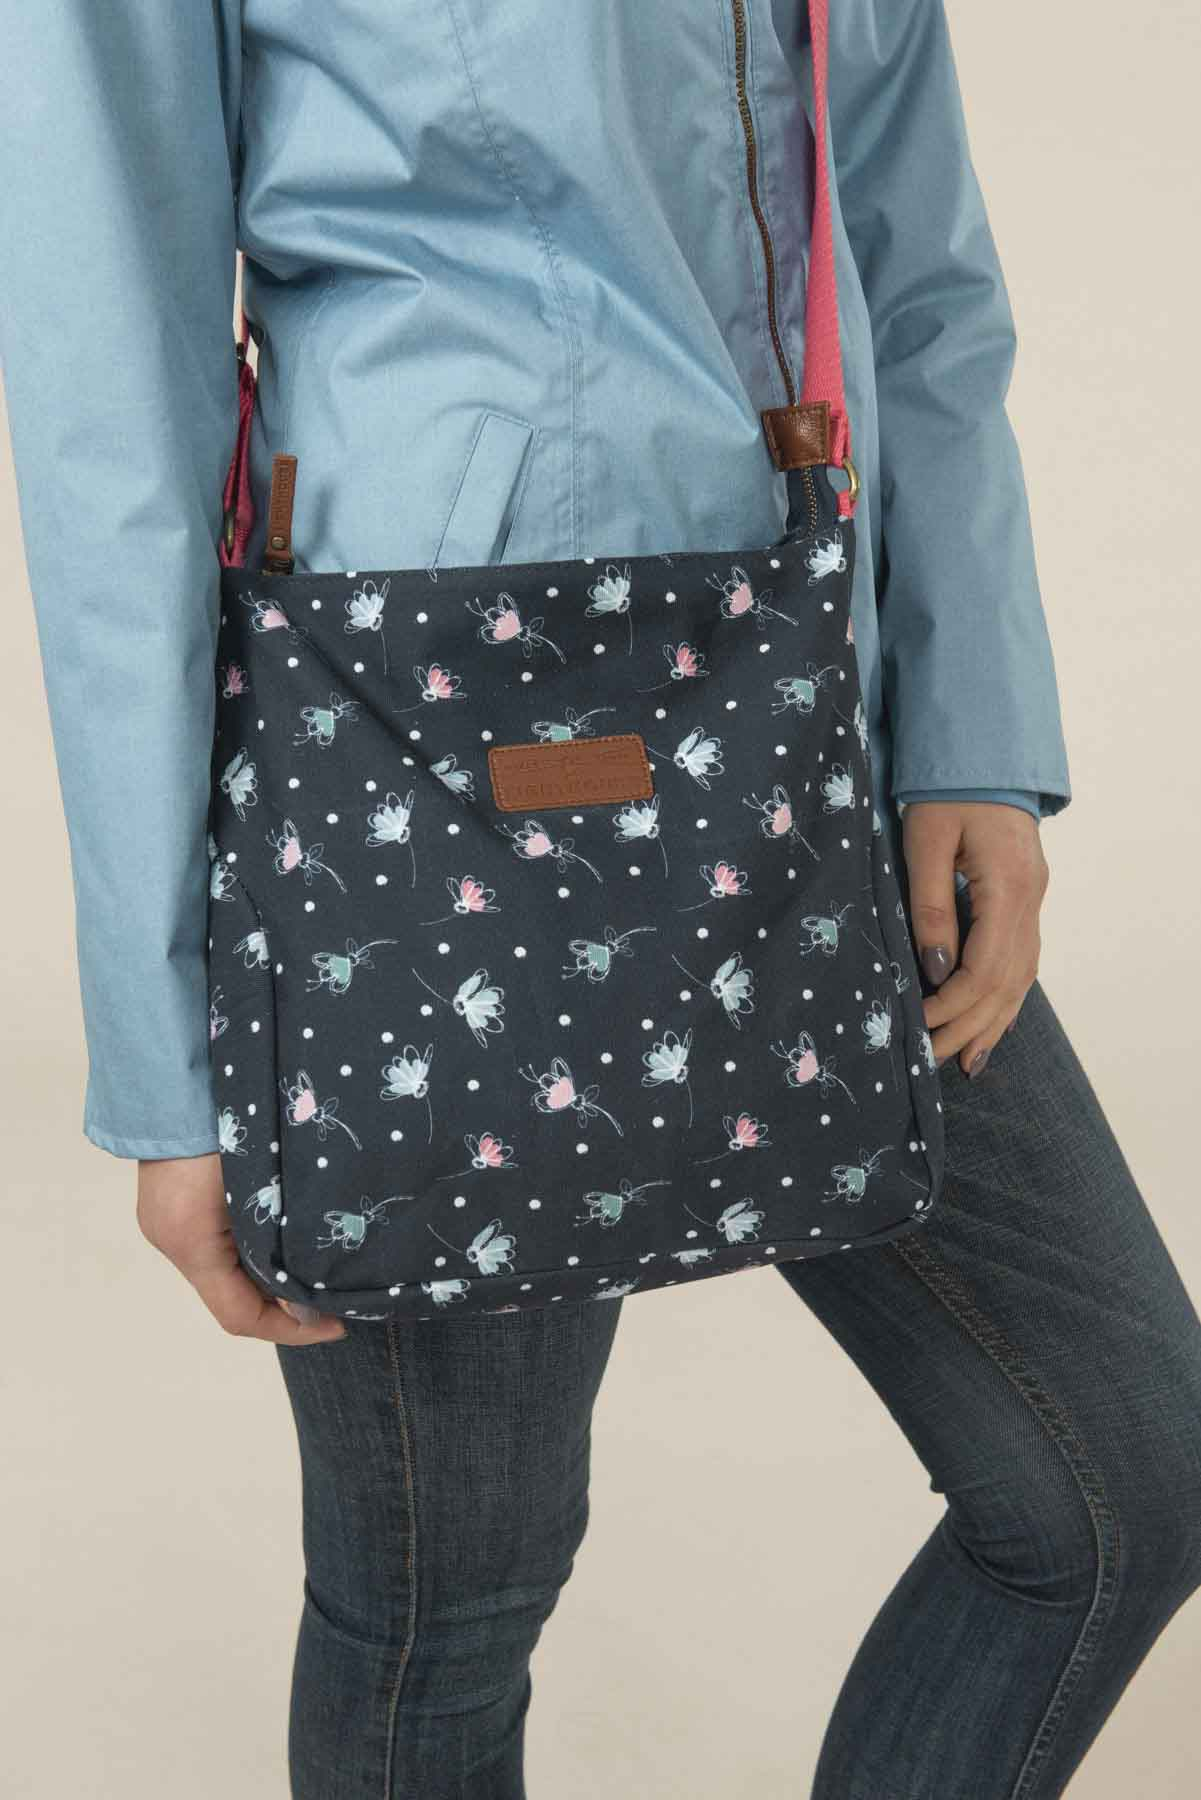 Women's Accessories - Navy patterned cross over body bag